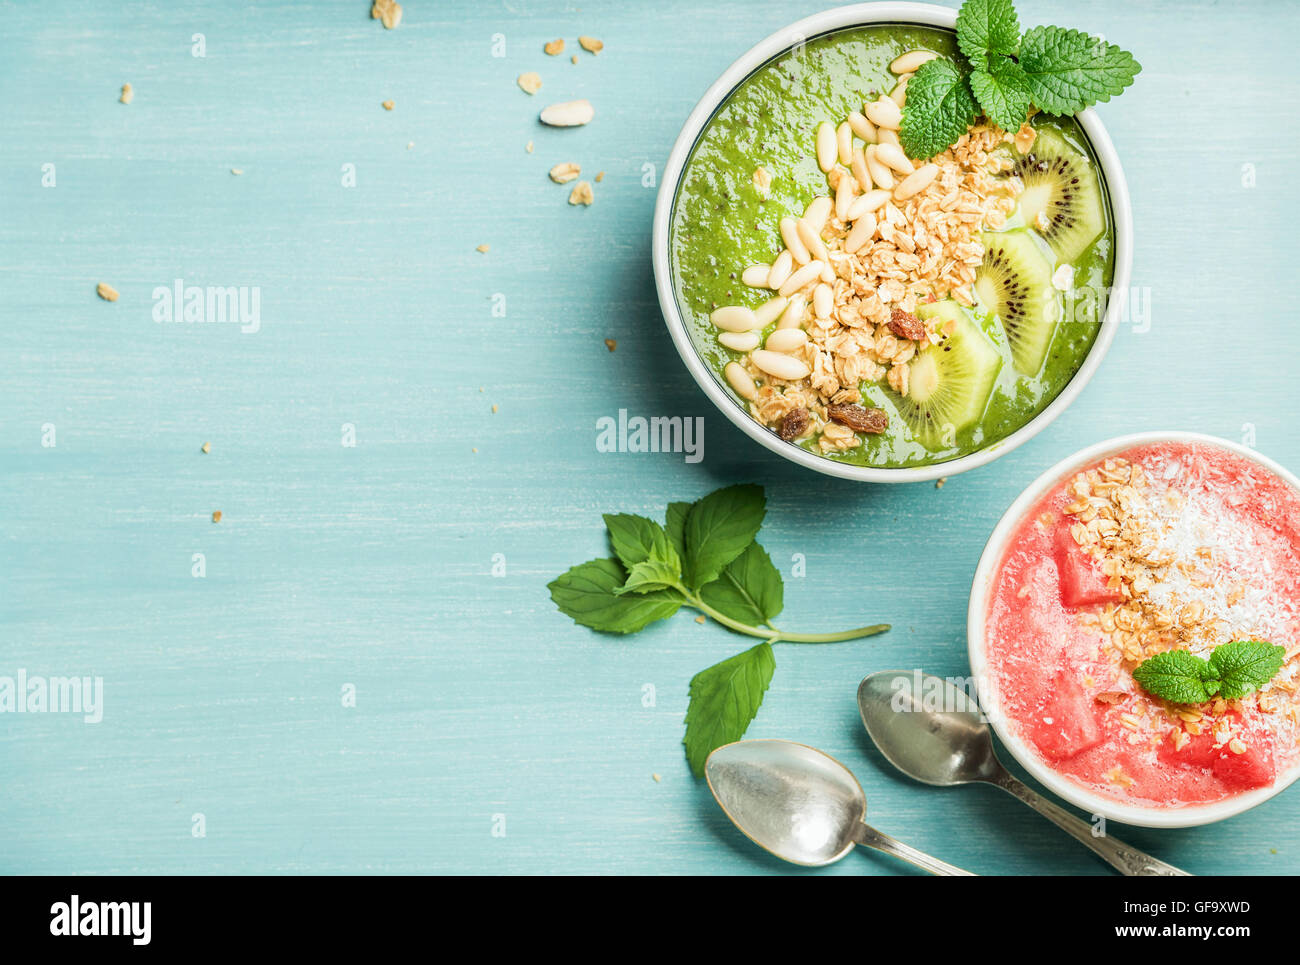 Healthy summer breakfast concept. Colorful fruit smoothie bowls on turquoise blue background - Stock Image